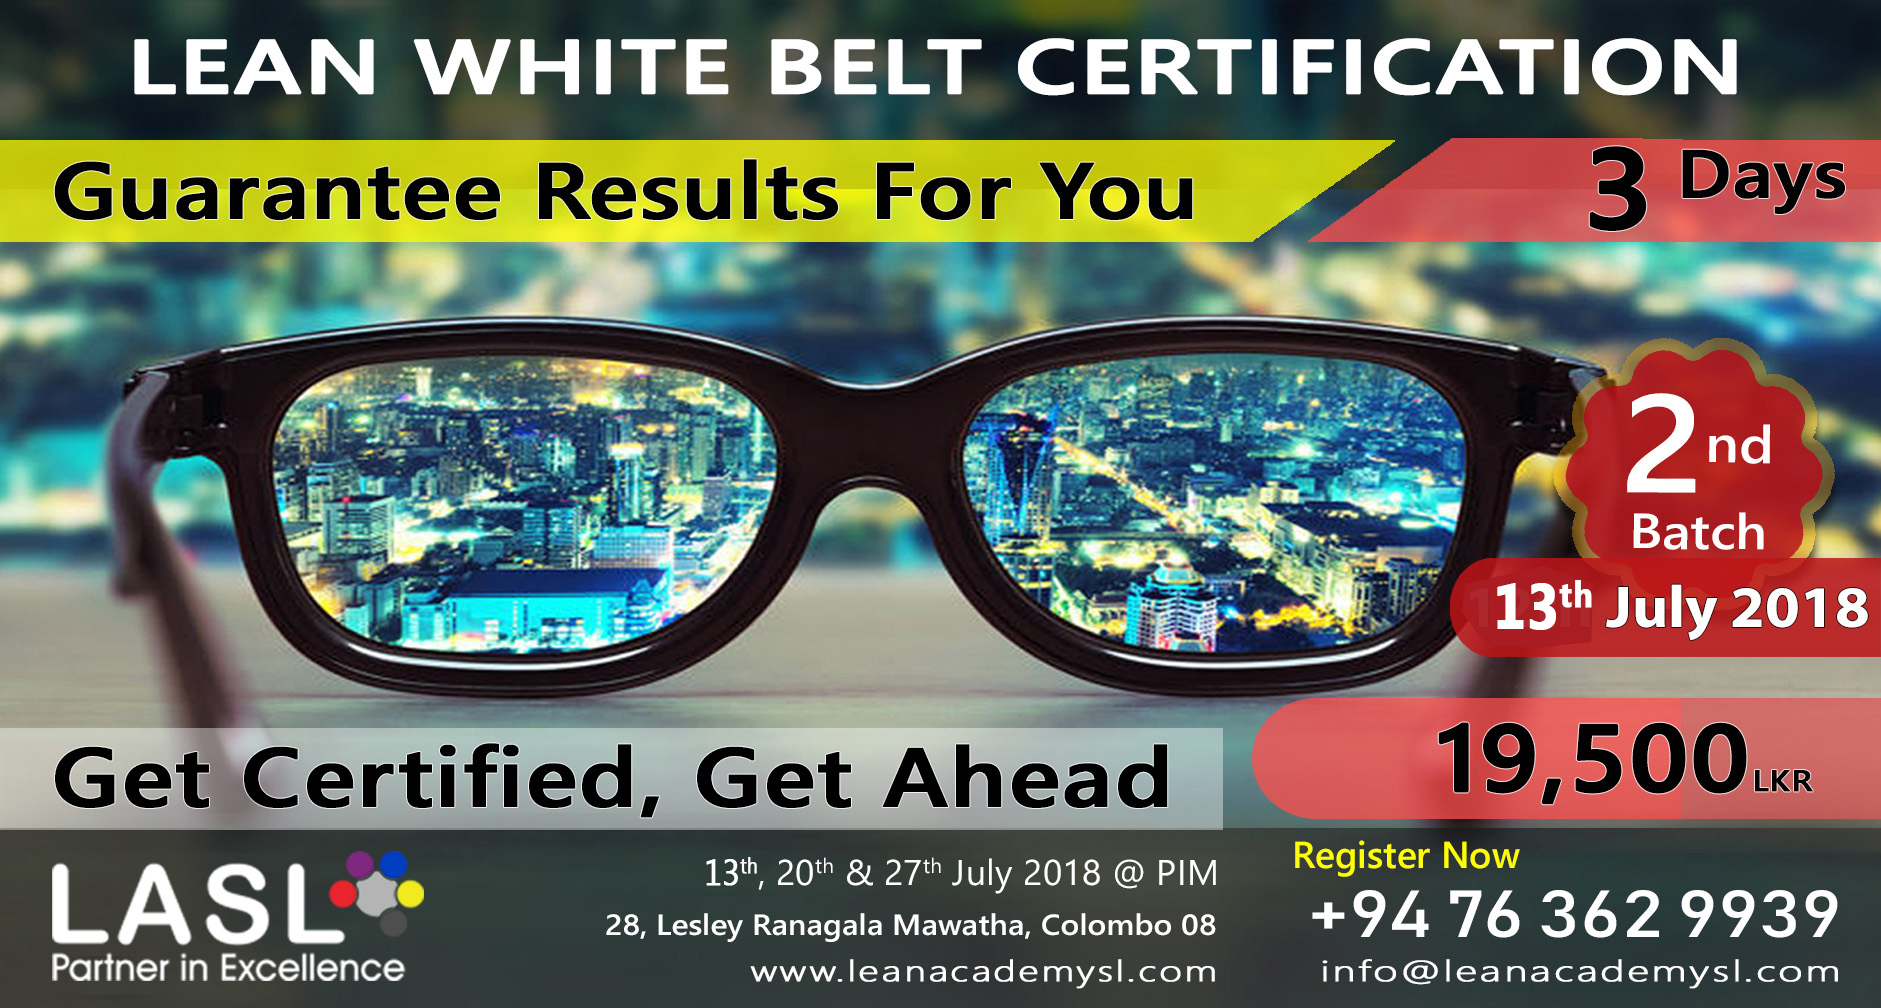 Lean Foundation - Lean White Belt Certification 2nd Batch